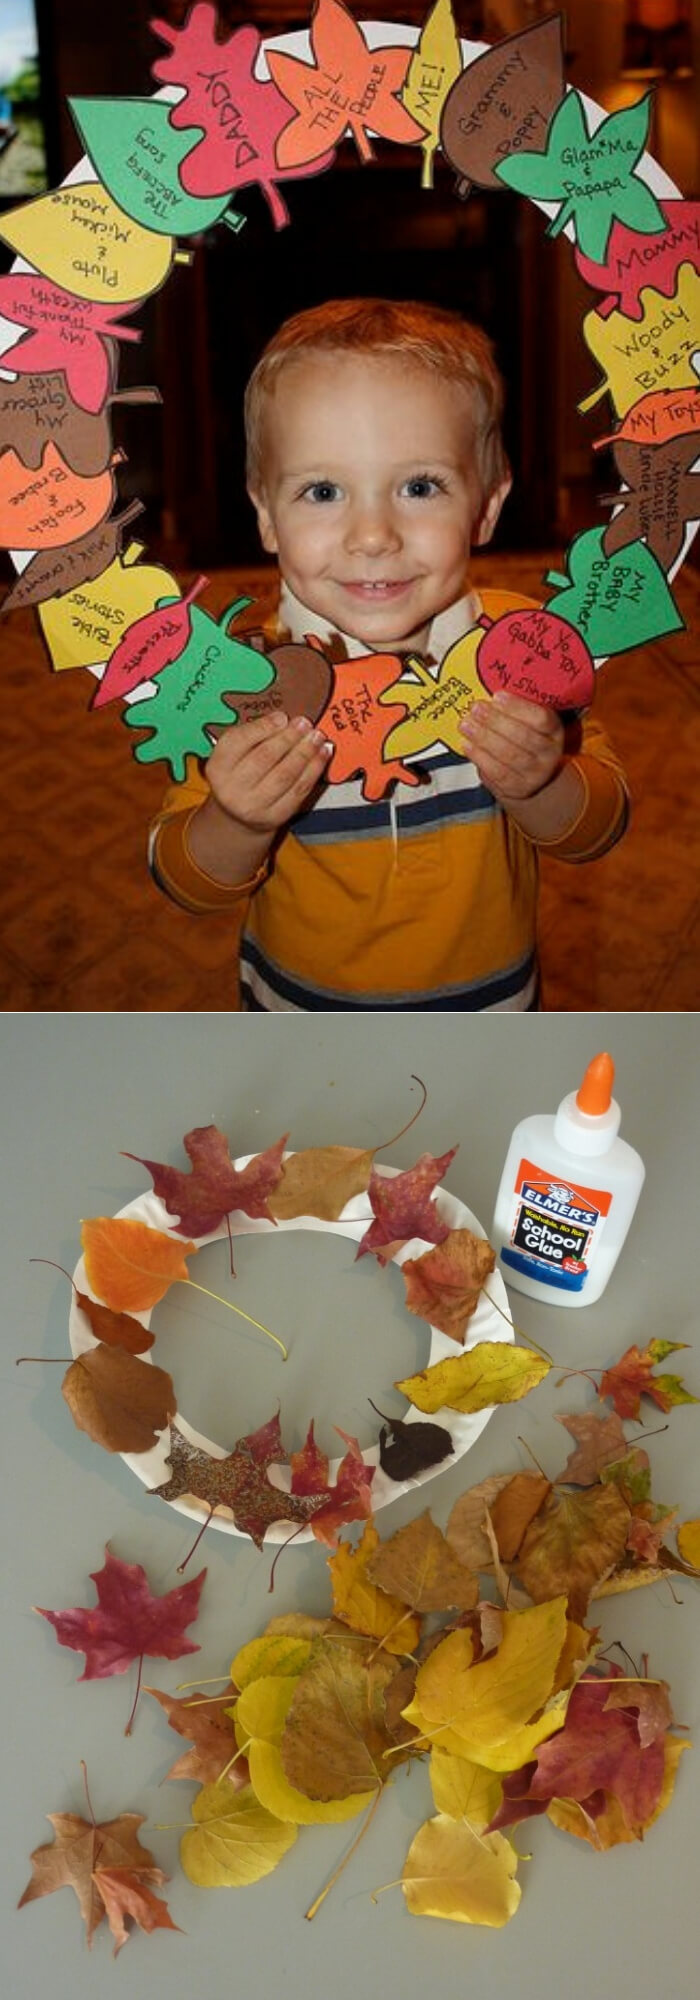 Wreath   Thanksgiving Gifts Kids Can Make - FarmFoodFamily.com